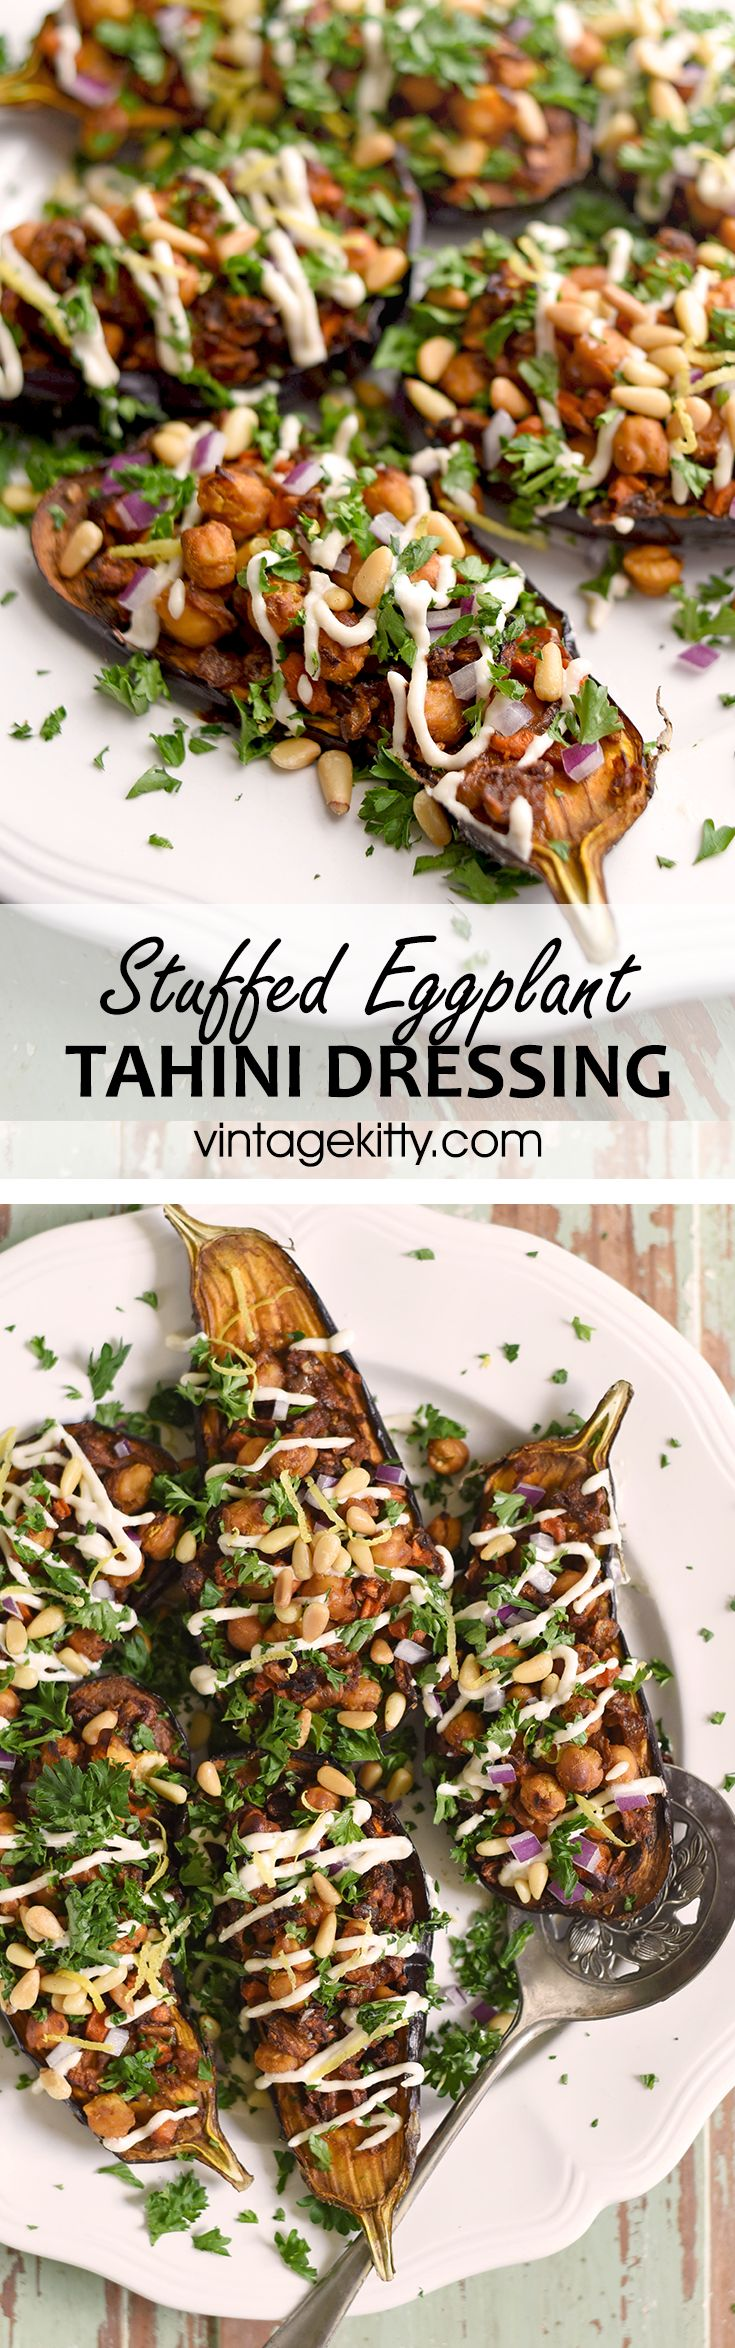 Eggplant becomes the vessel for warmly spiced chickpeas and carrots in this lavish #vegan recipe. It's drizzled with a sweet lemon tahini dressing and topped with fresh parsley and pine nuts.